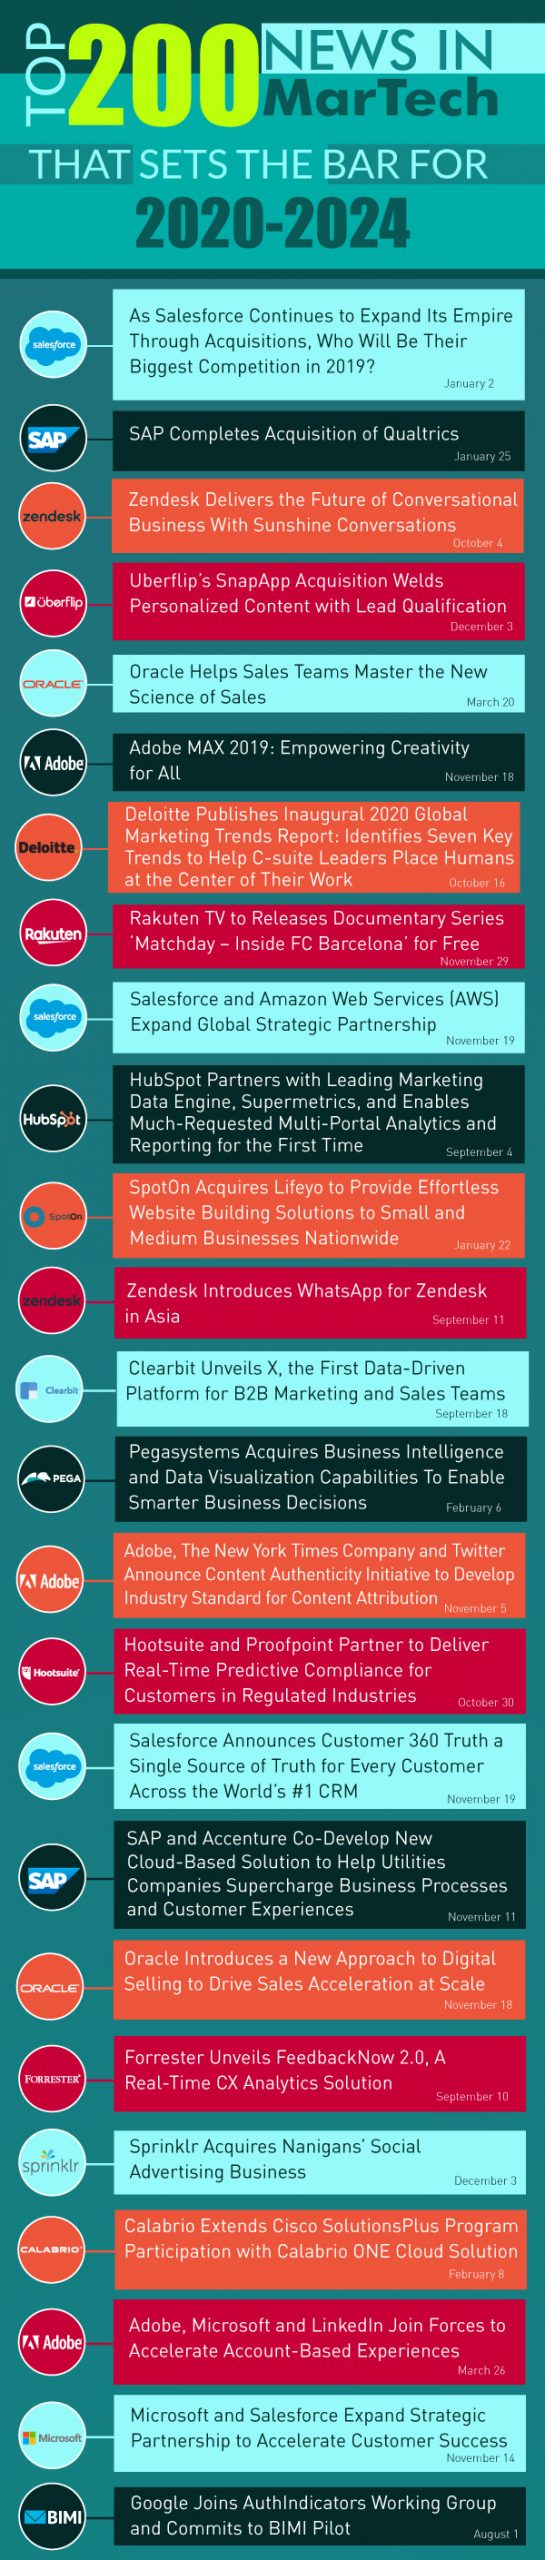 Rewinding 2019: Top 200 News in MarTech that Sets the Bar for 2020-2024